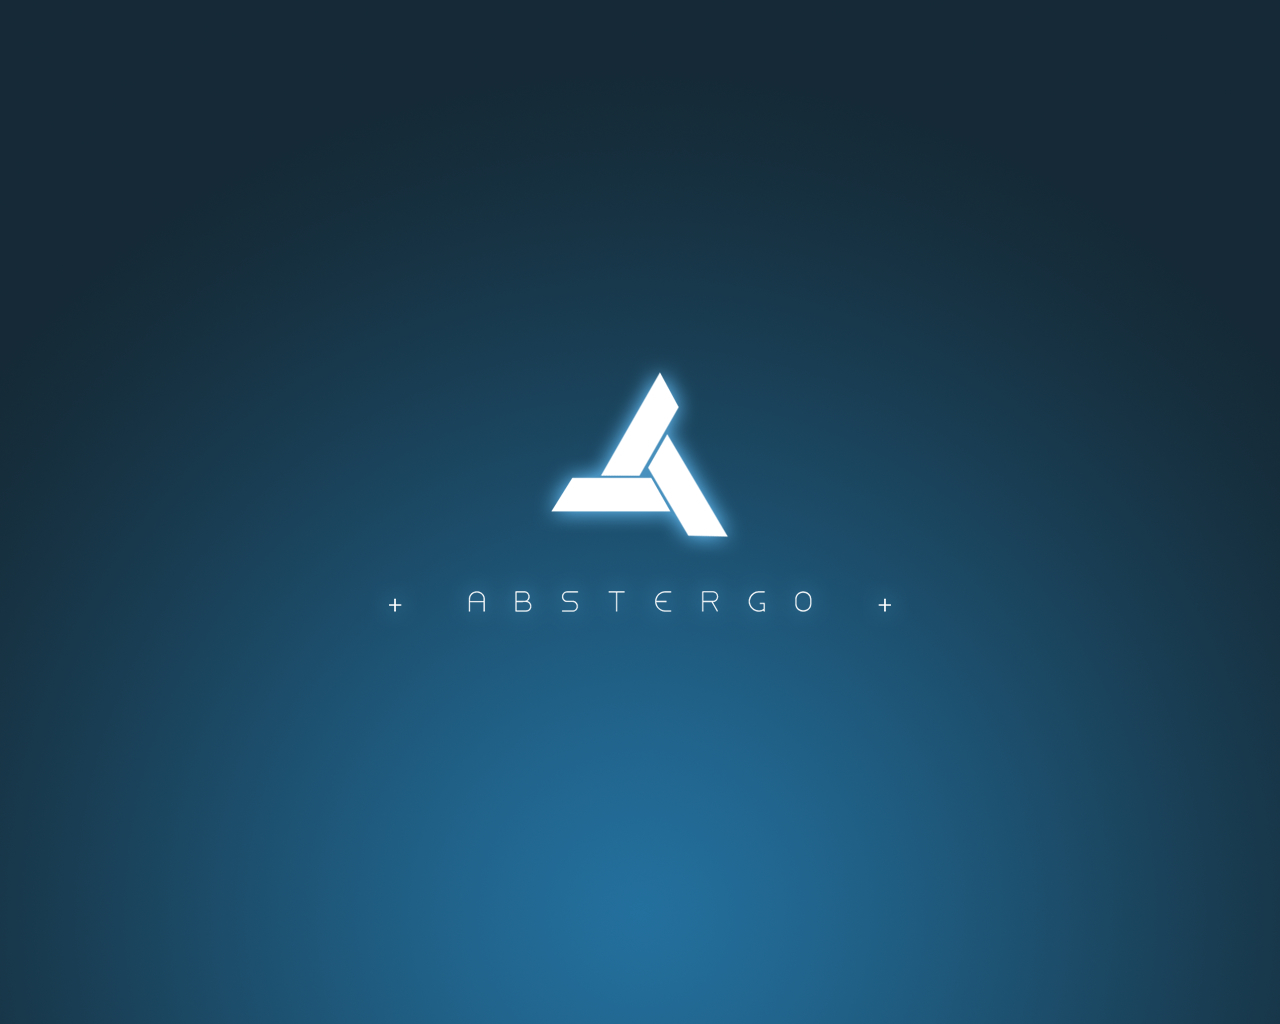 assassins creed Abstergo Anime HD Wallpaper